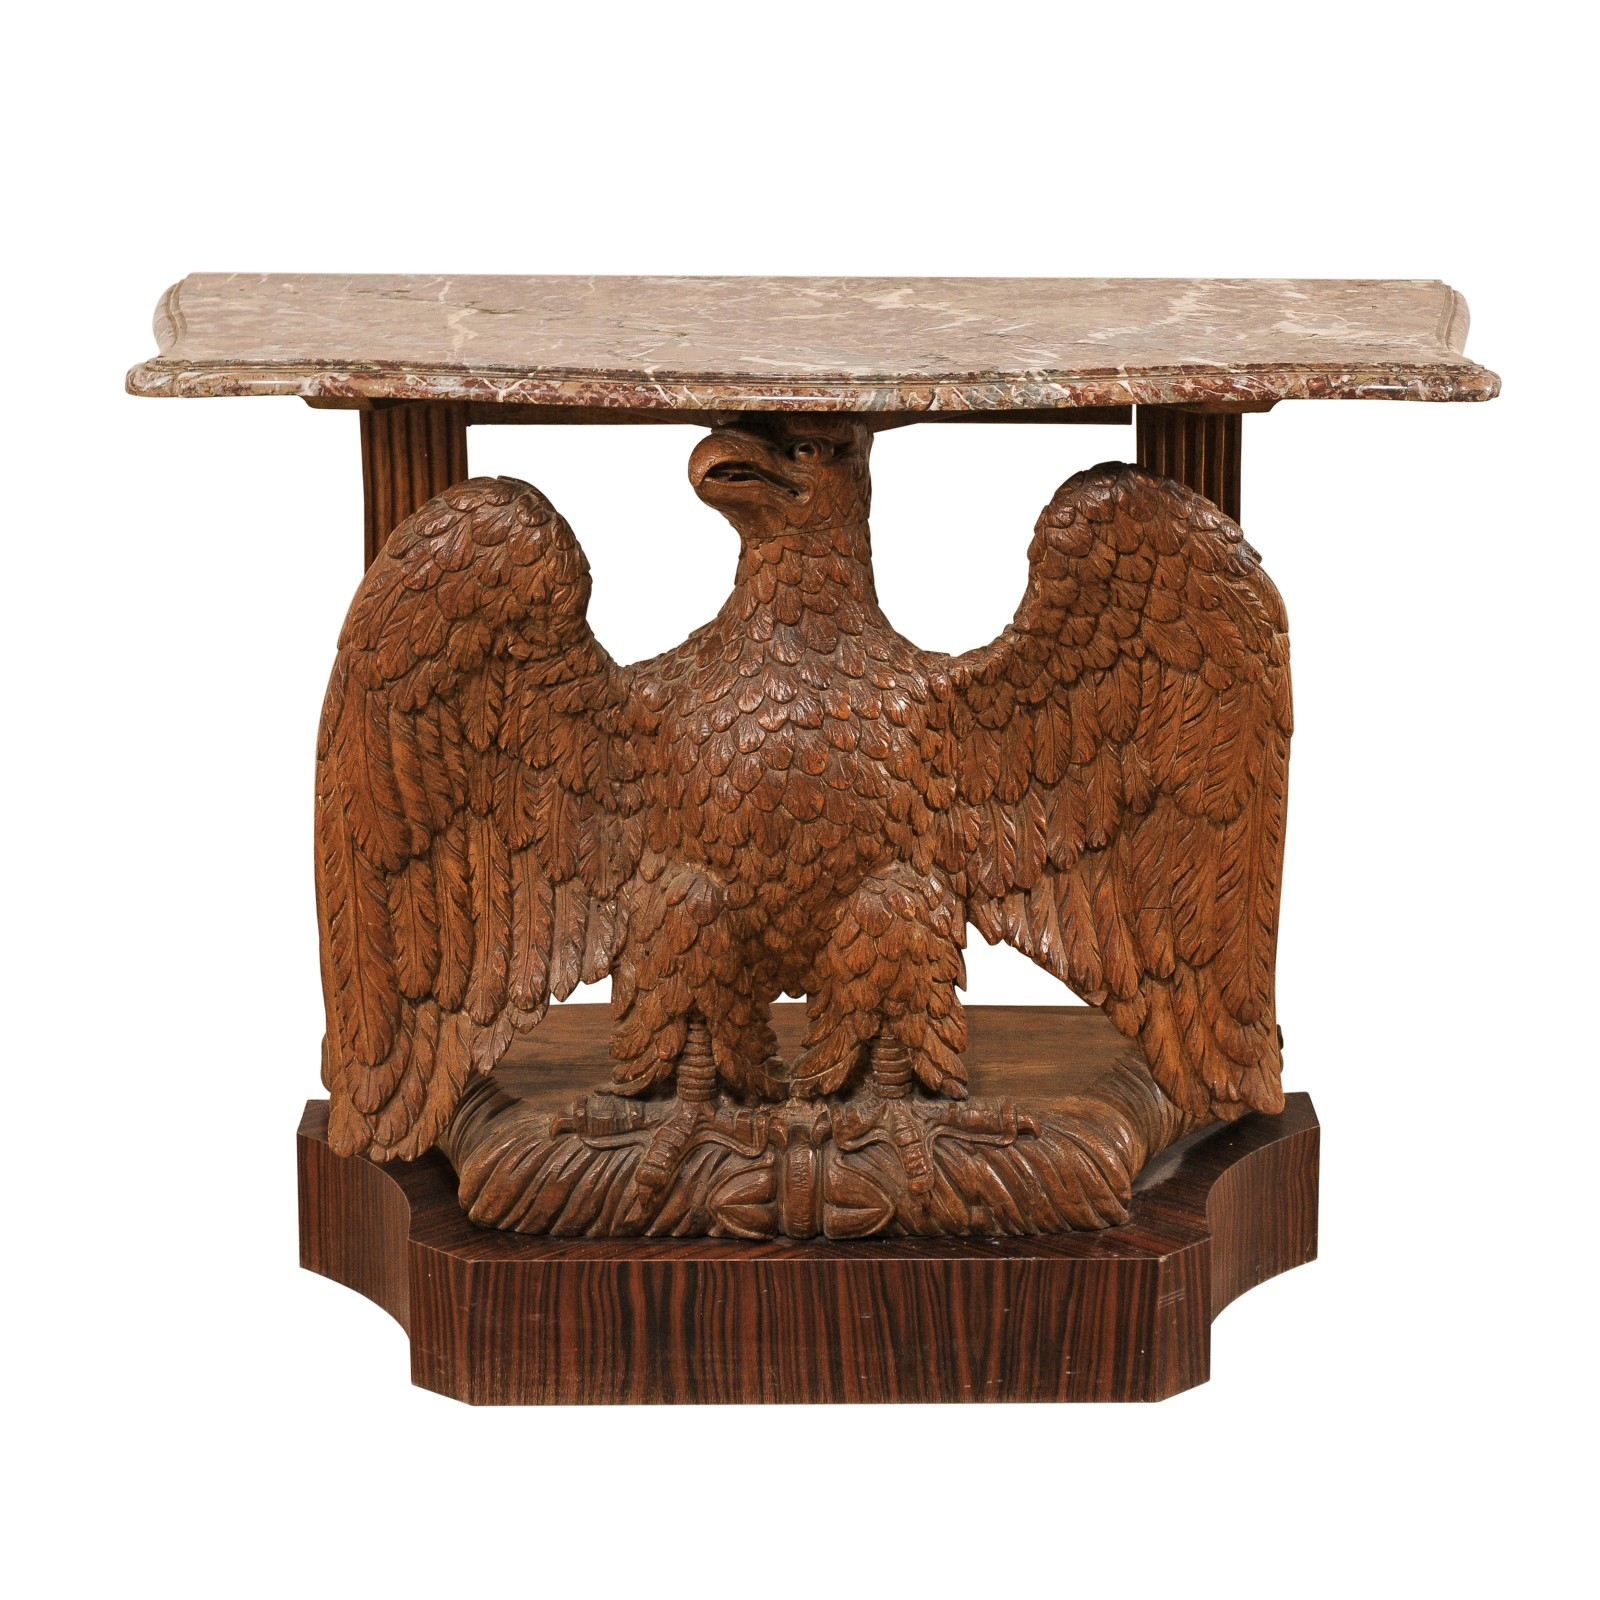 A Carved Eagle Console Table, c. 1820